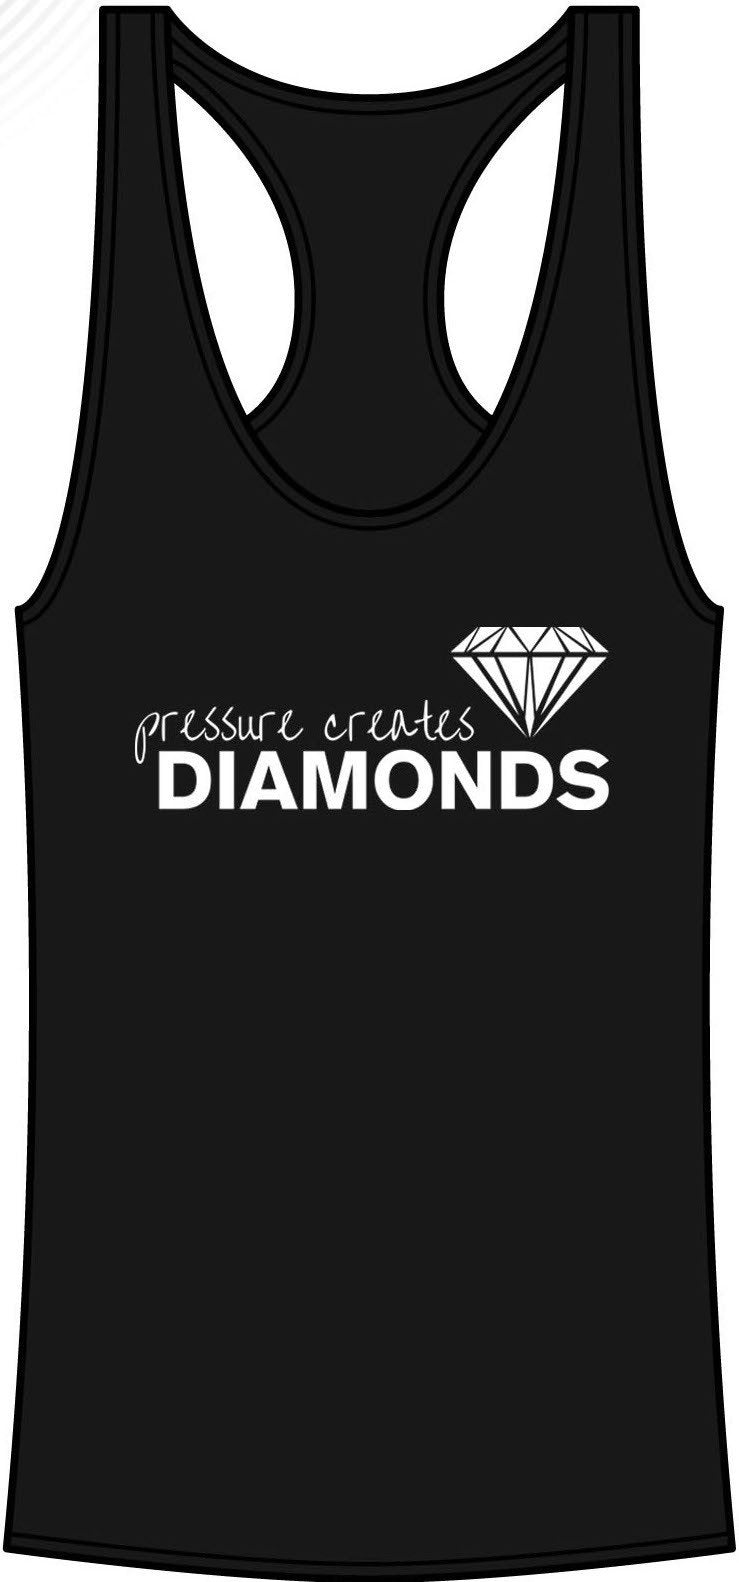 Pressure Creates Diamonds Black Tanktop FitGirls Inspire